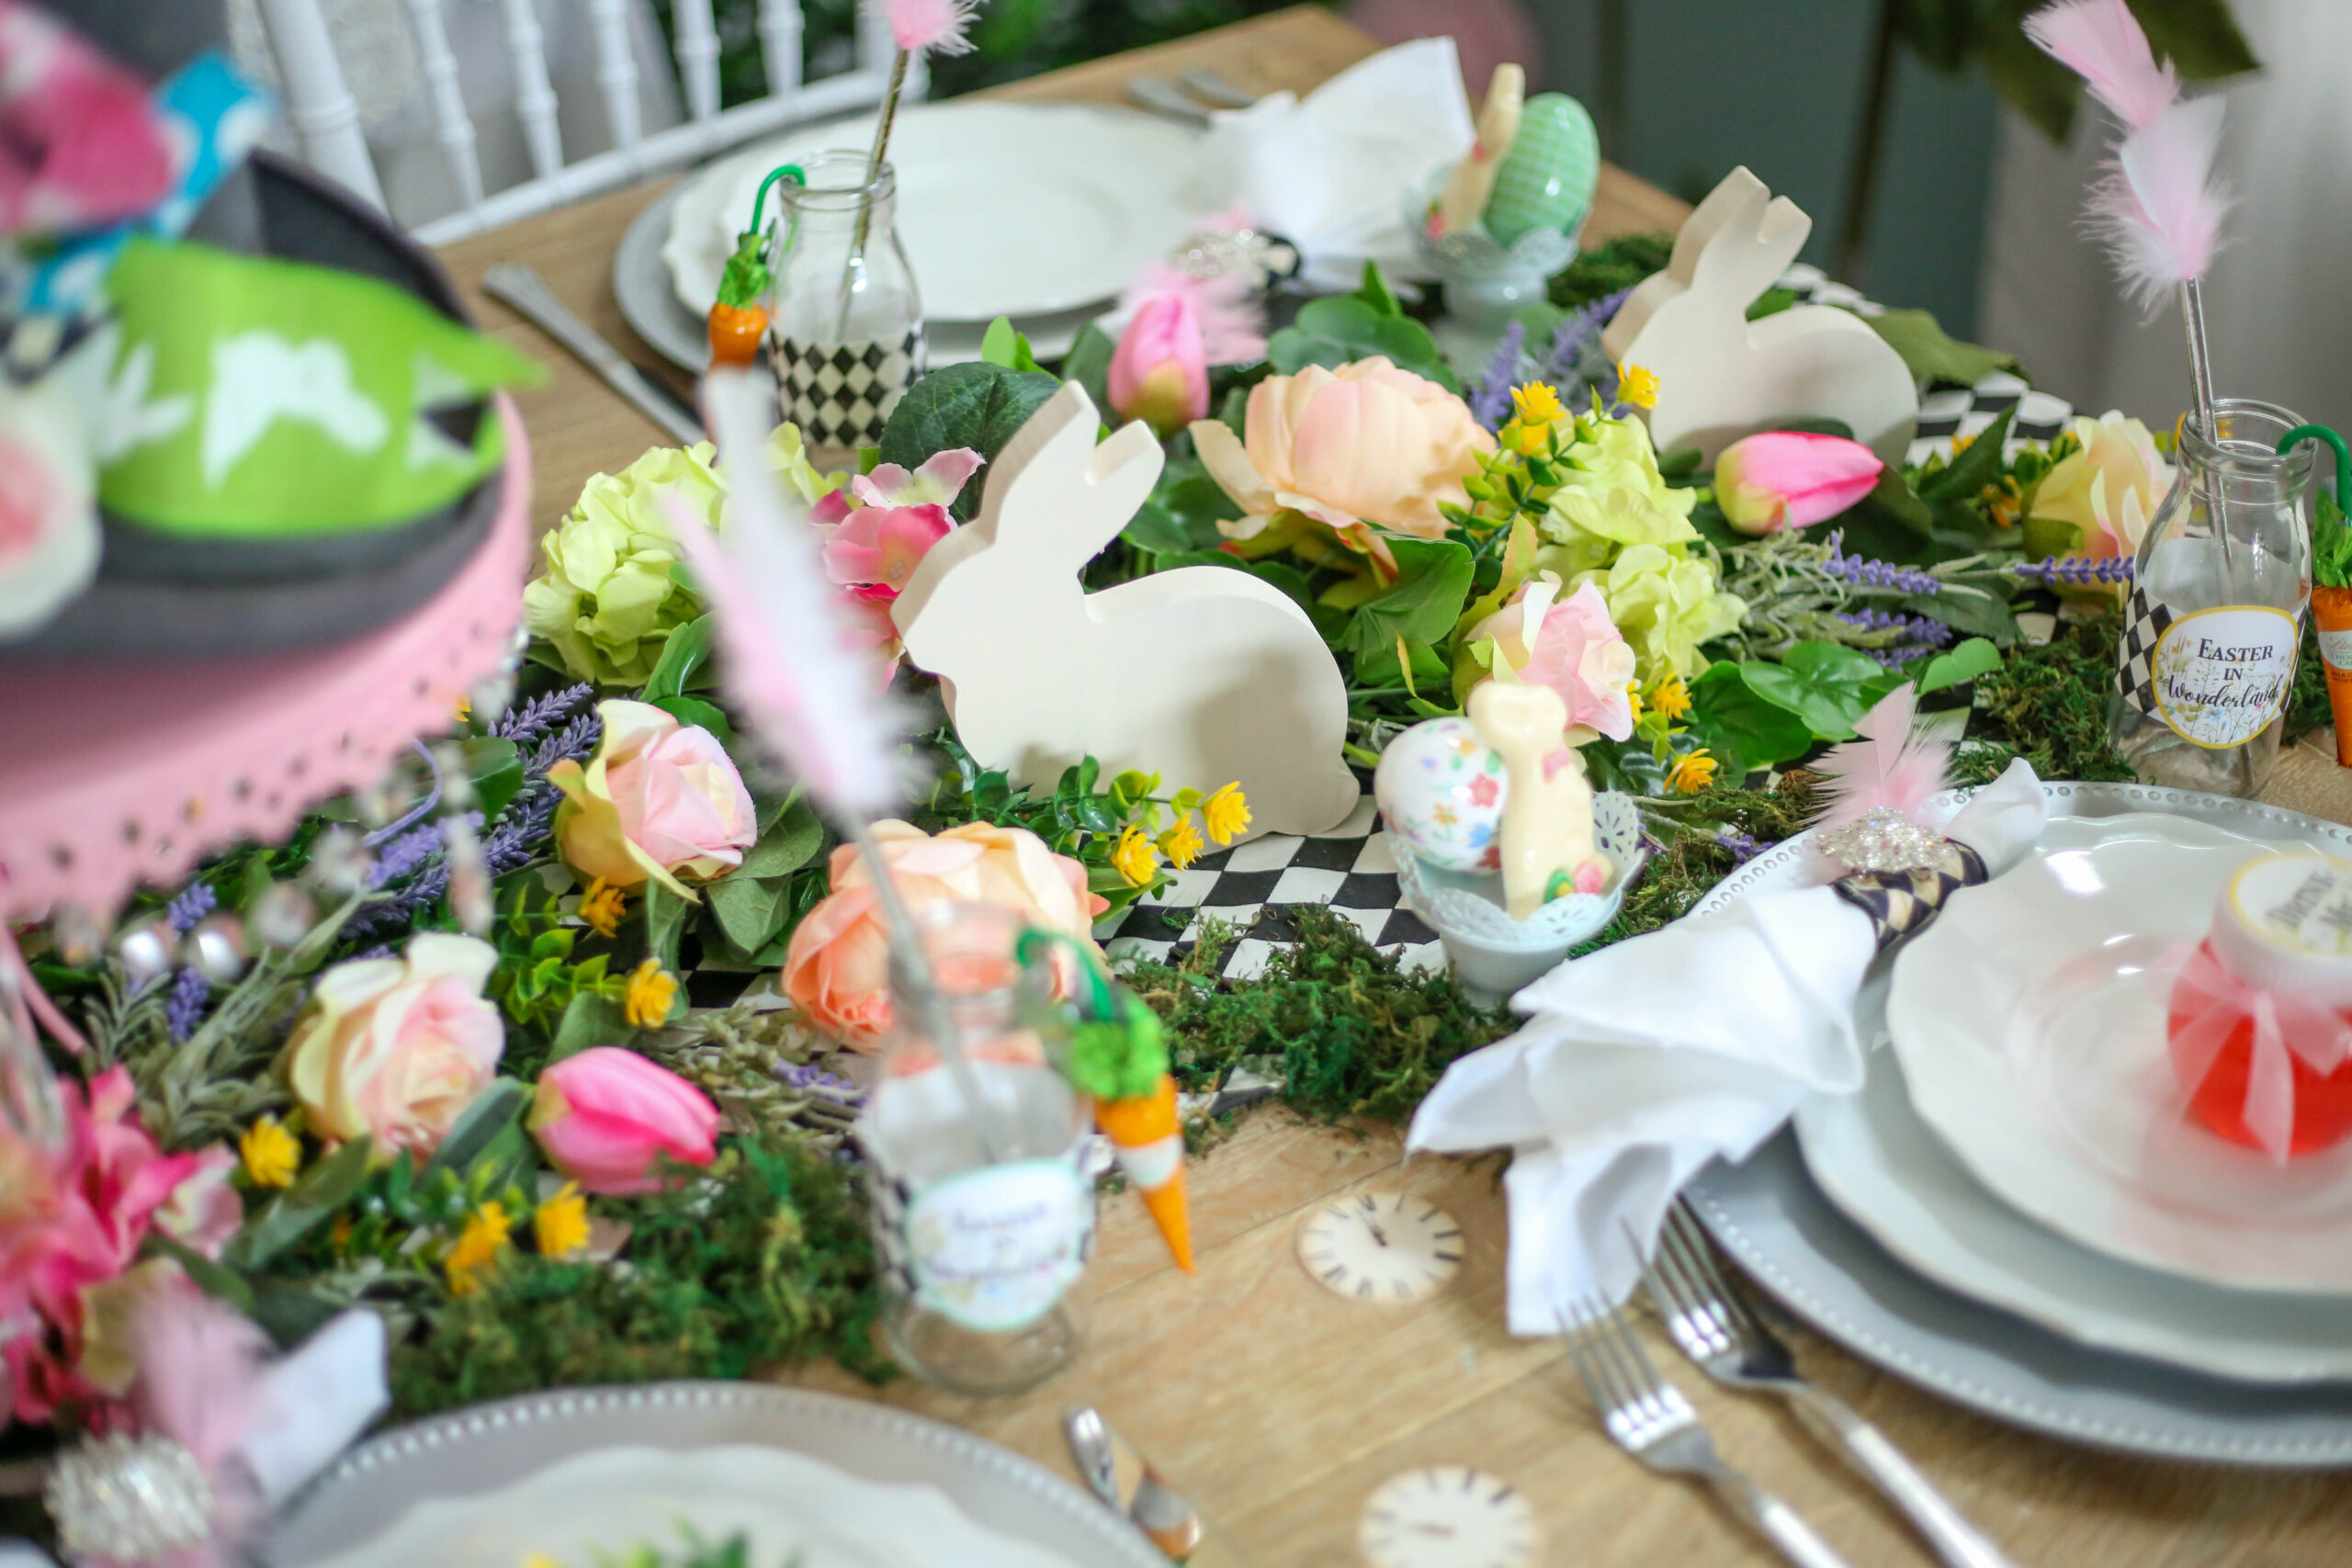 wood cut bunnies in a floral tablescape for easter